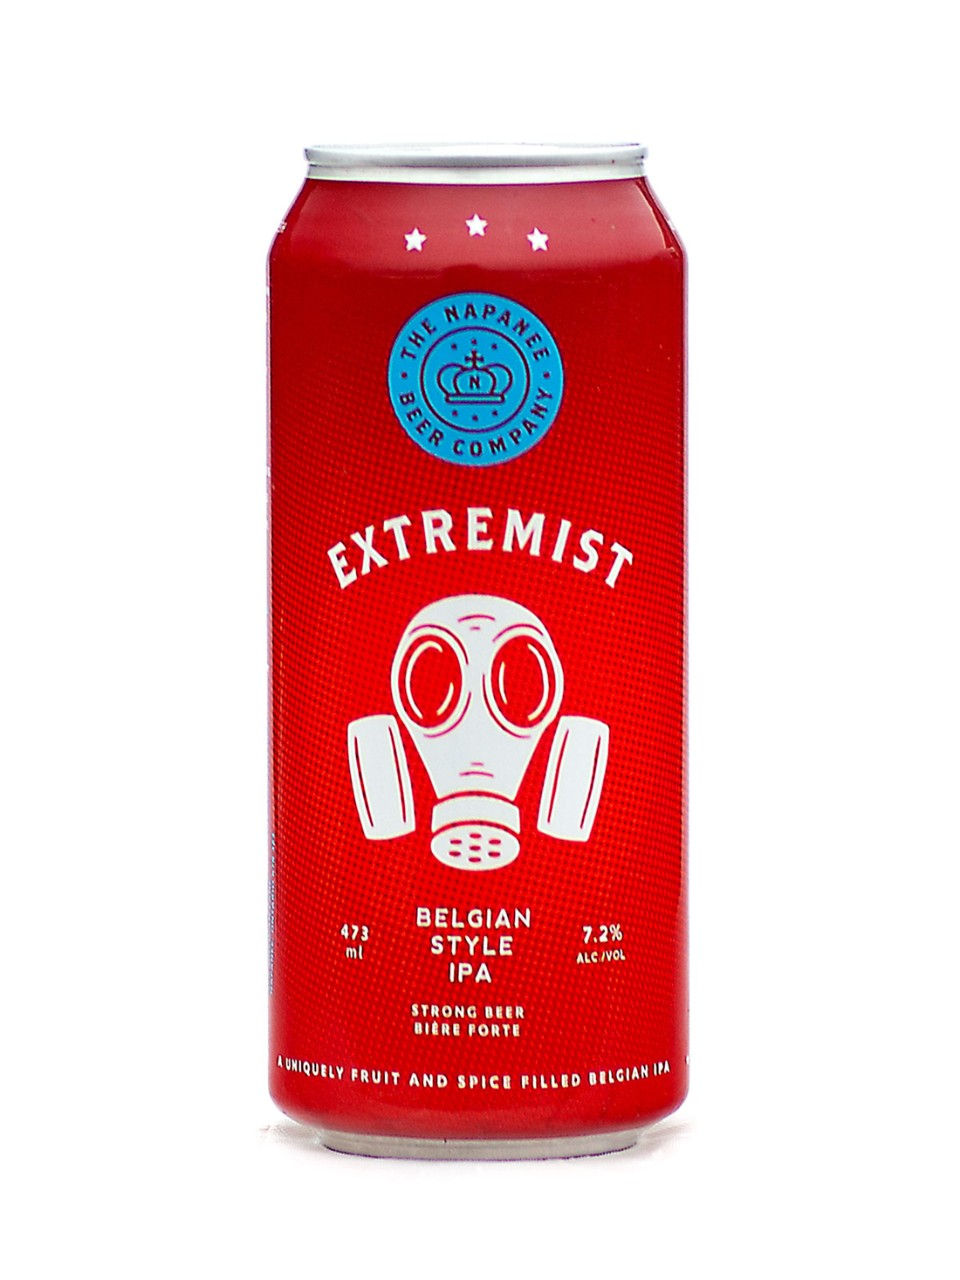 Image for The Napanee Beer Company EXTREMIST Belgian Style IPA from LCBO